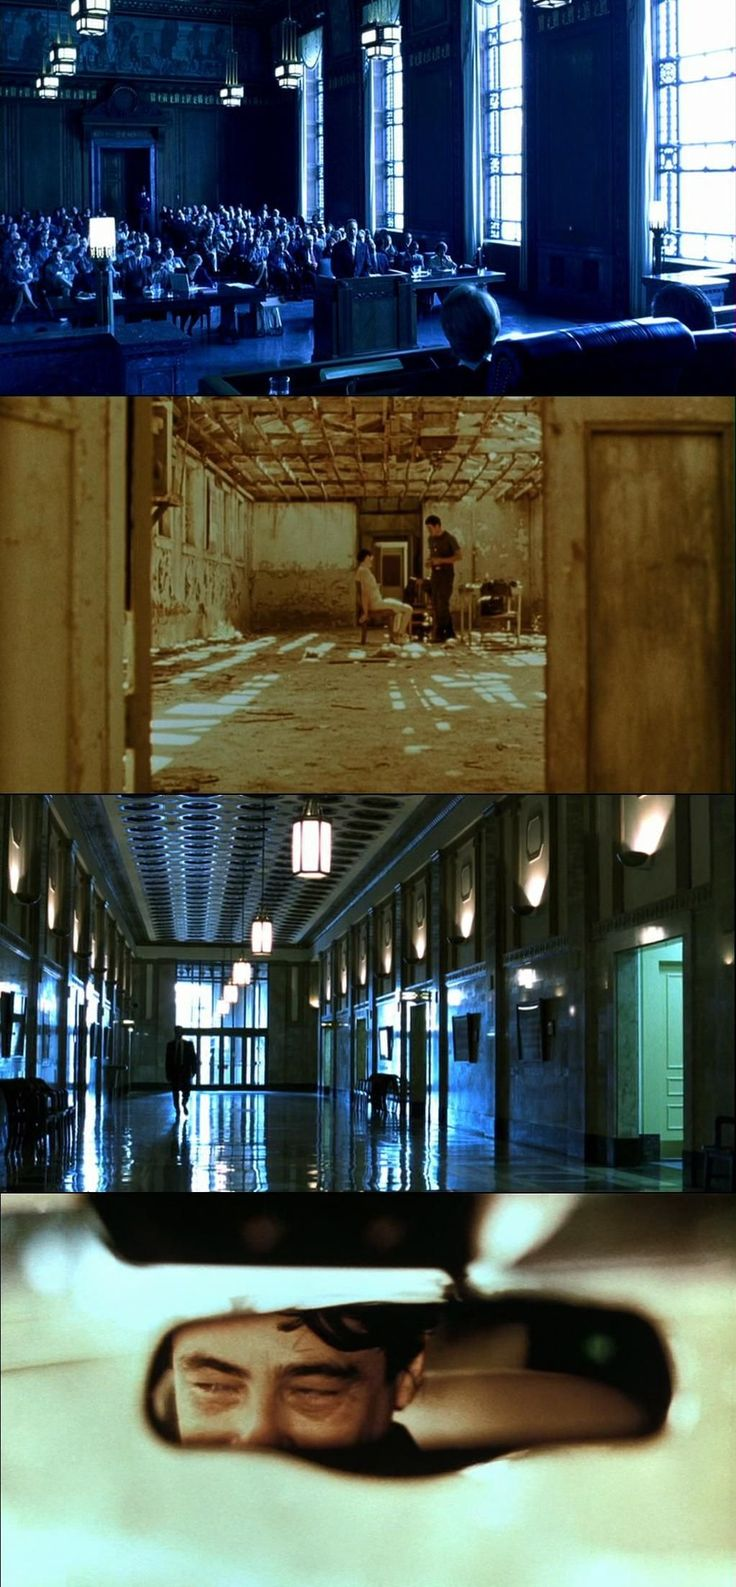 the searchers mise en scene Blade runner (for mise-en-scene) memento (to show great editing) the apartment (for a comedy) drive (to show good directing) raging bull (to show cinematography) singin in the rain (for a musical) the royal tennenbaums (for lighting/colour) the good the bad and the ugly (western) the general (silent film) 8 1/2 (foreign films.